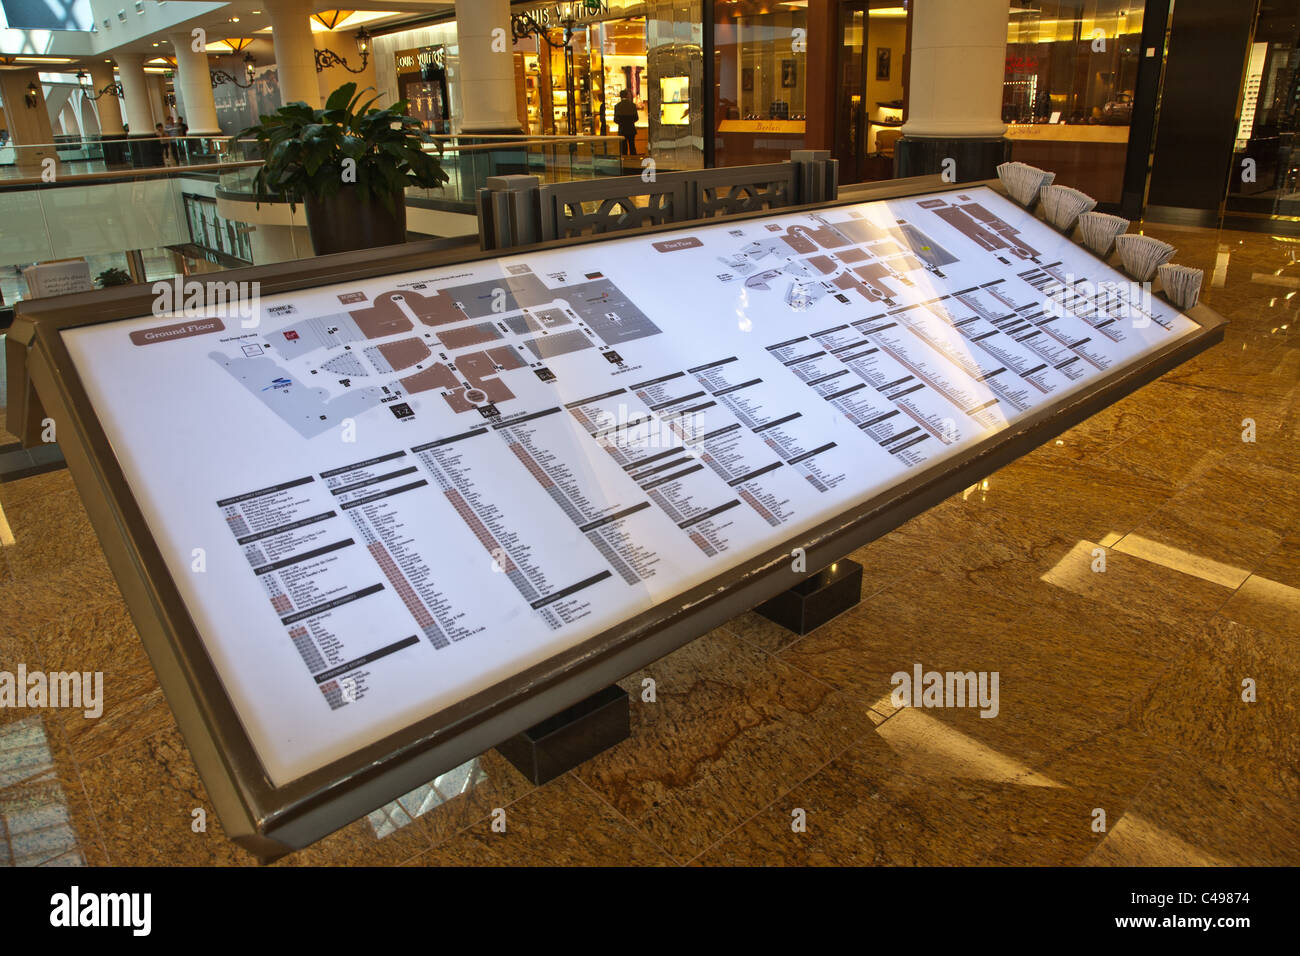 Mall Map Stock Photos & Mall Map Stock Images - Alamy